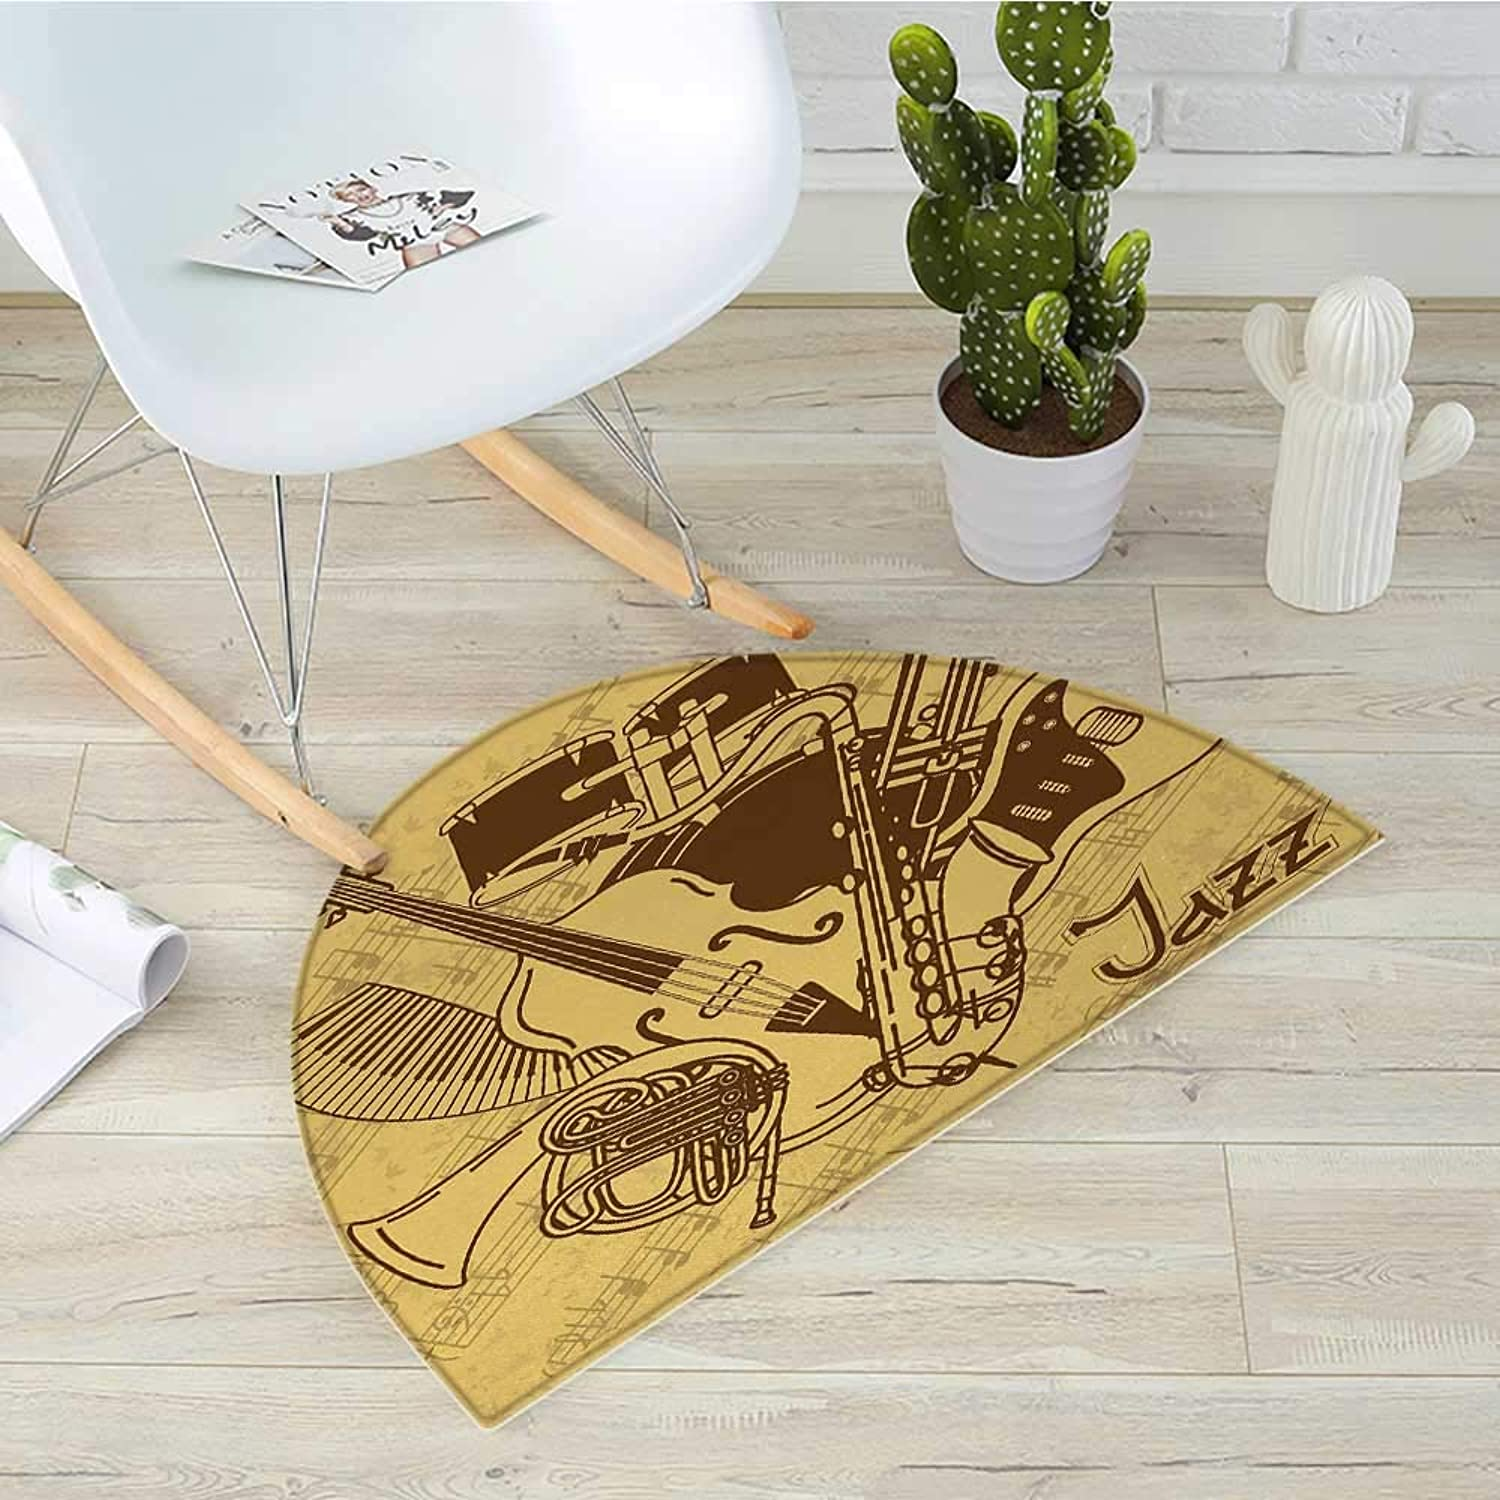 Music Semicircle Doormat Jazz Music Equipments with Vintage Background Retro Style Music Print Home Decor Halfmoon doormats H 39.3  xD 59  Cream Brown